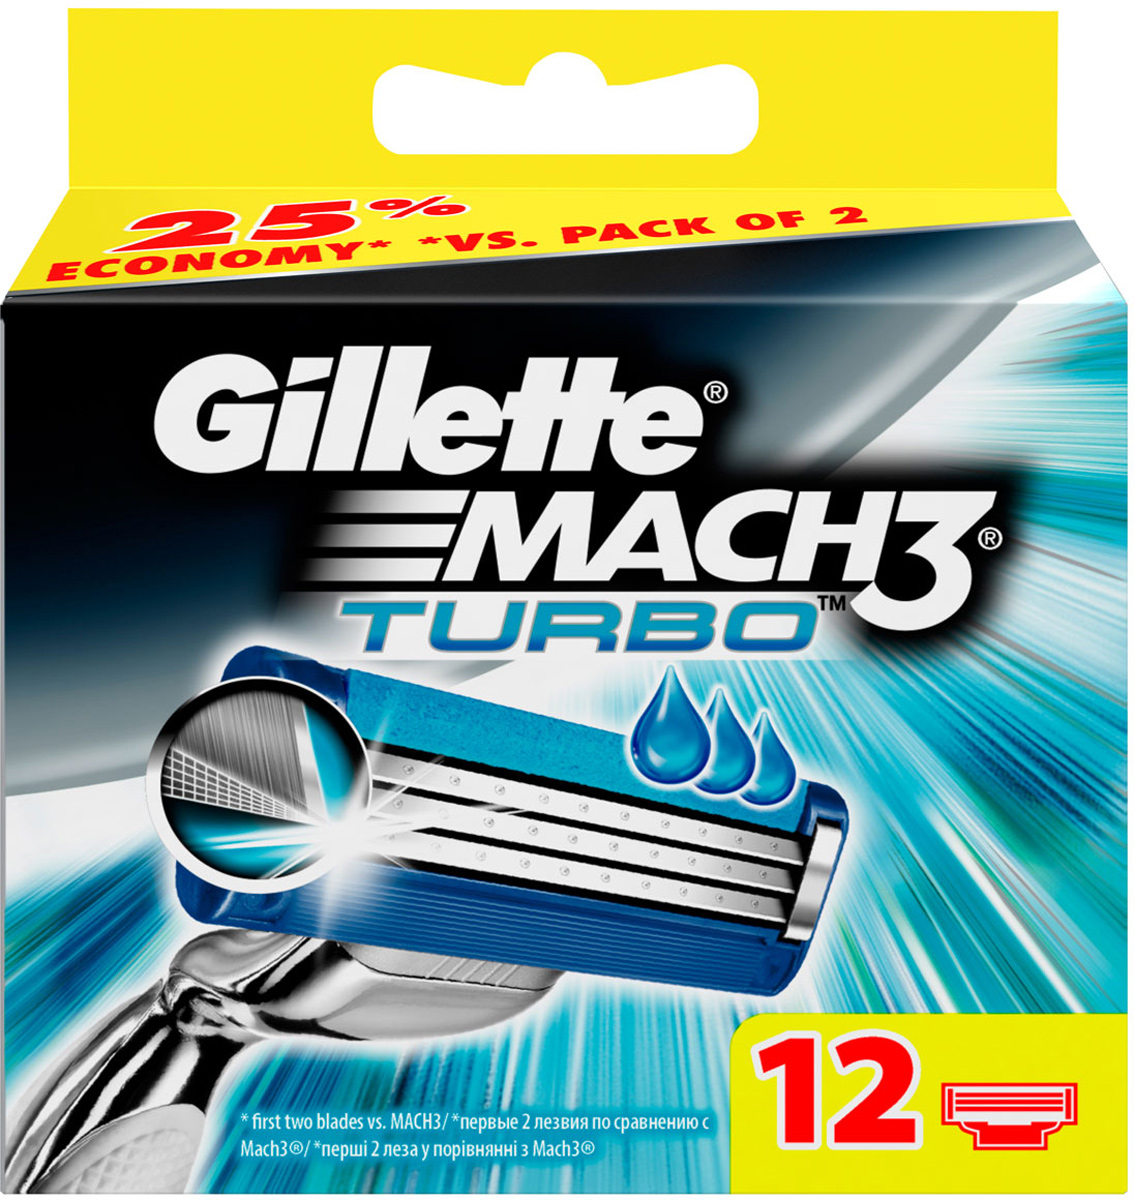 Сменные кассеты Gillette Mach3 Turbo для мужской бритвы, 12 шт free shipping best picture books for children 100 first english words sticker book